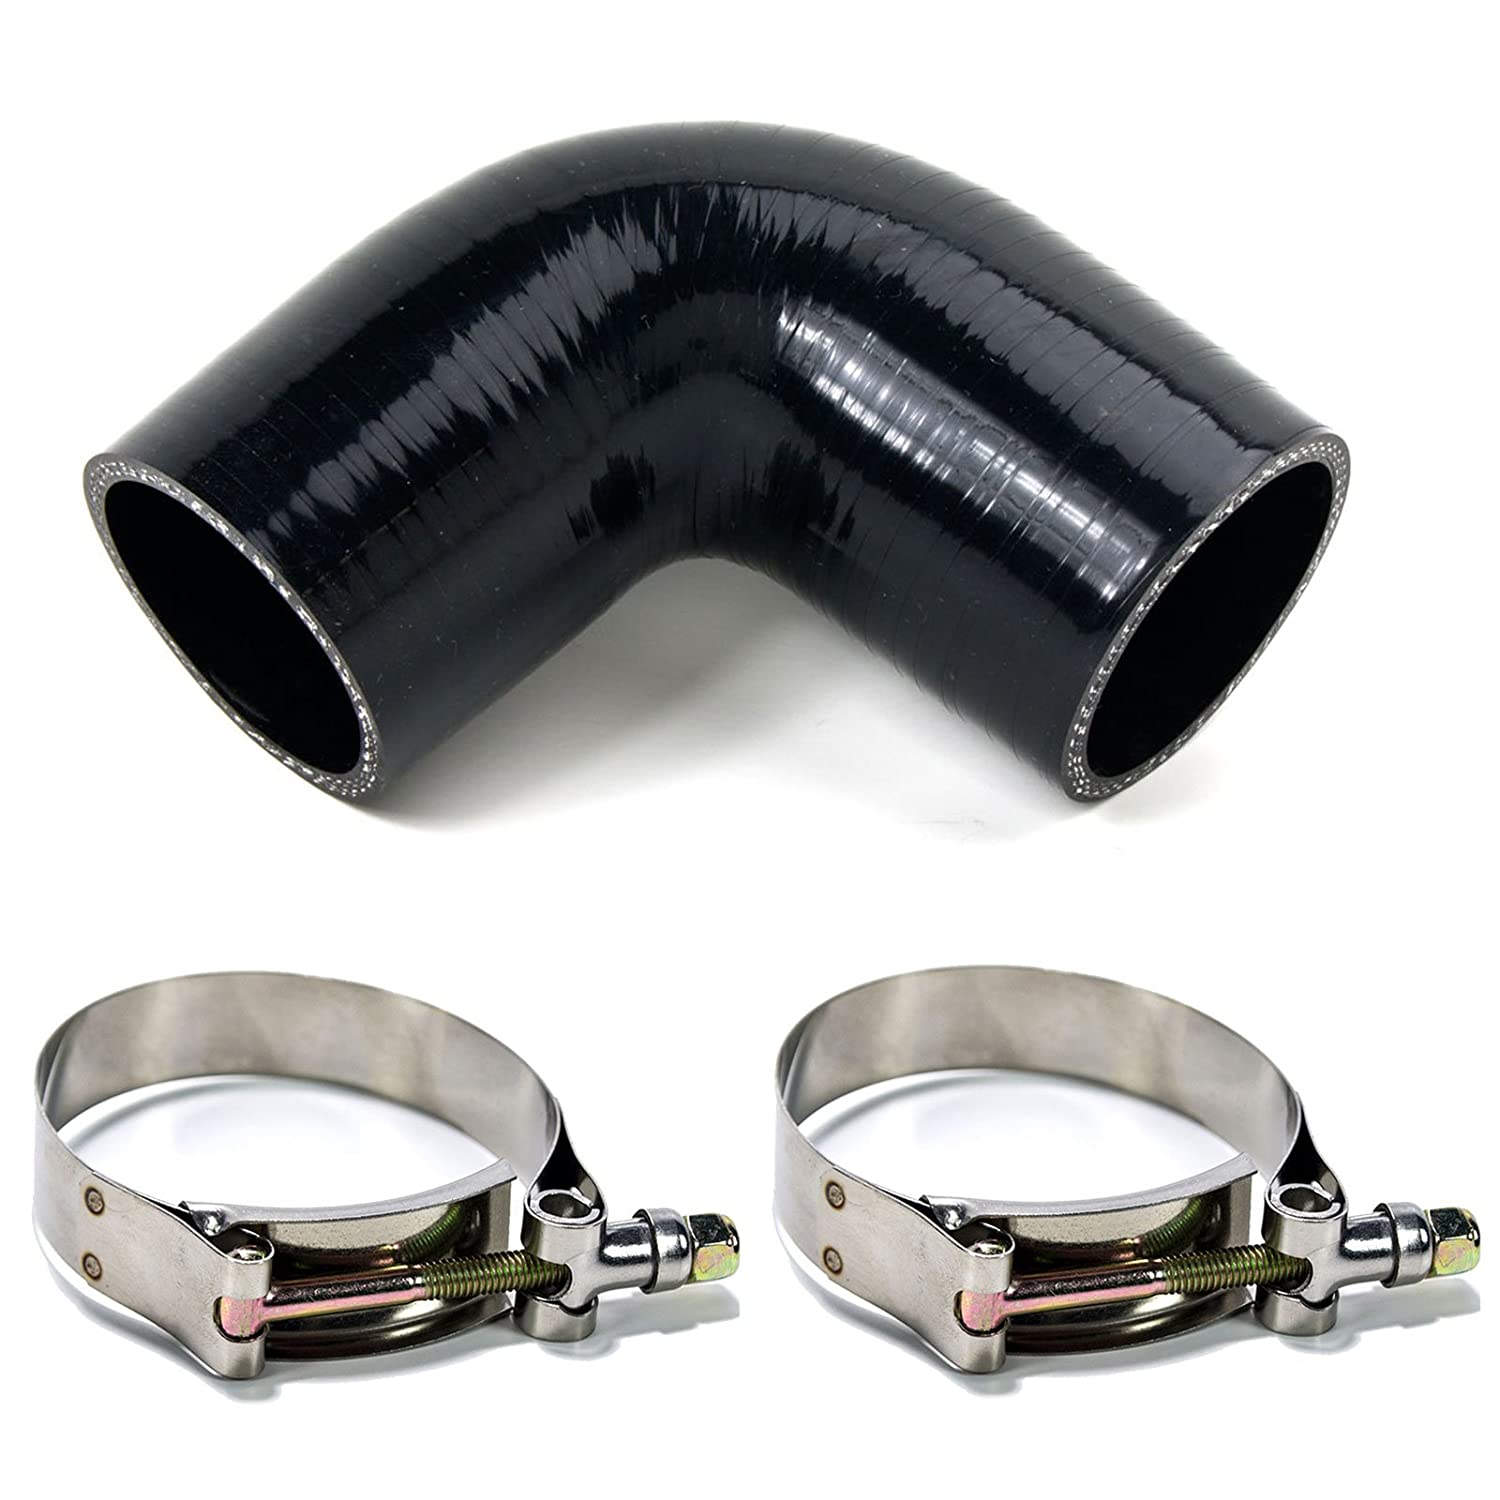 Squirrelly 2.75 inch Black Silicone Coupler 90 Degree Turbo Intake Intercooler Pipe w// 2x T-Bolt Clamps